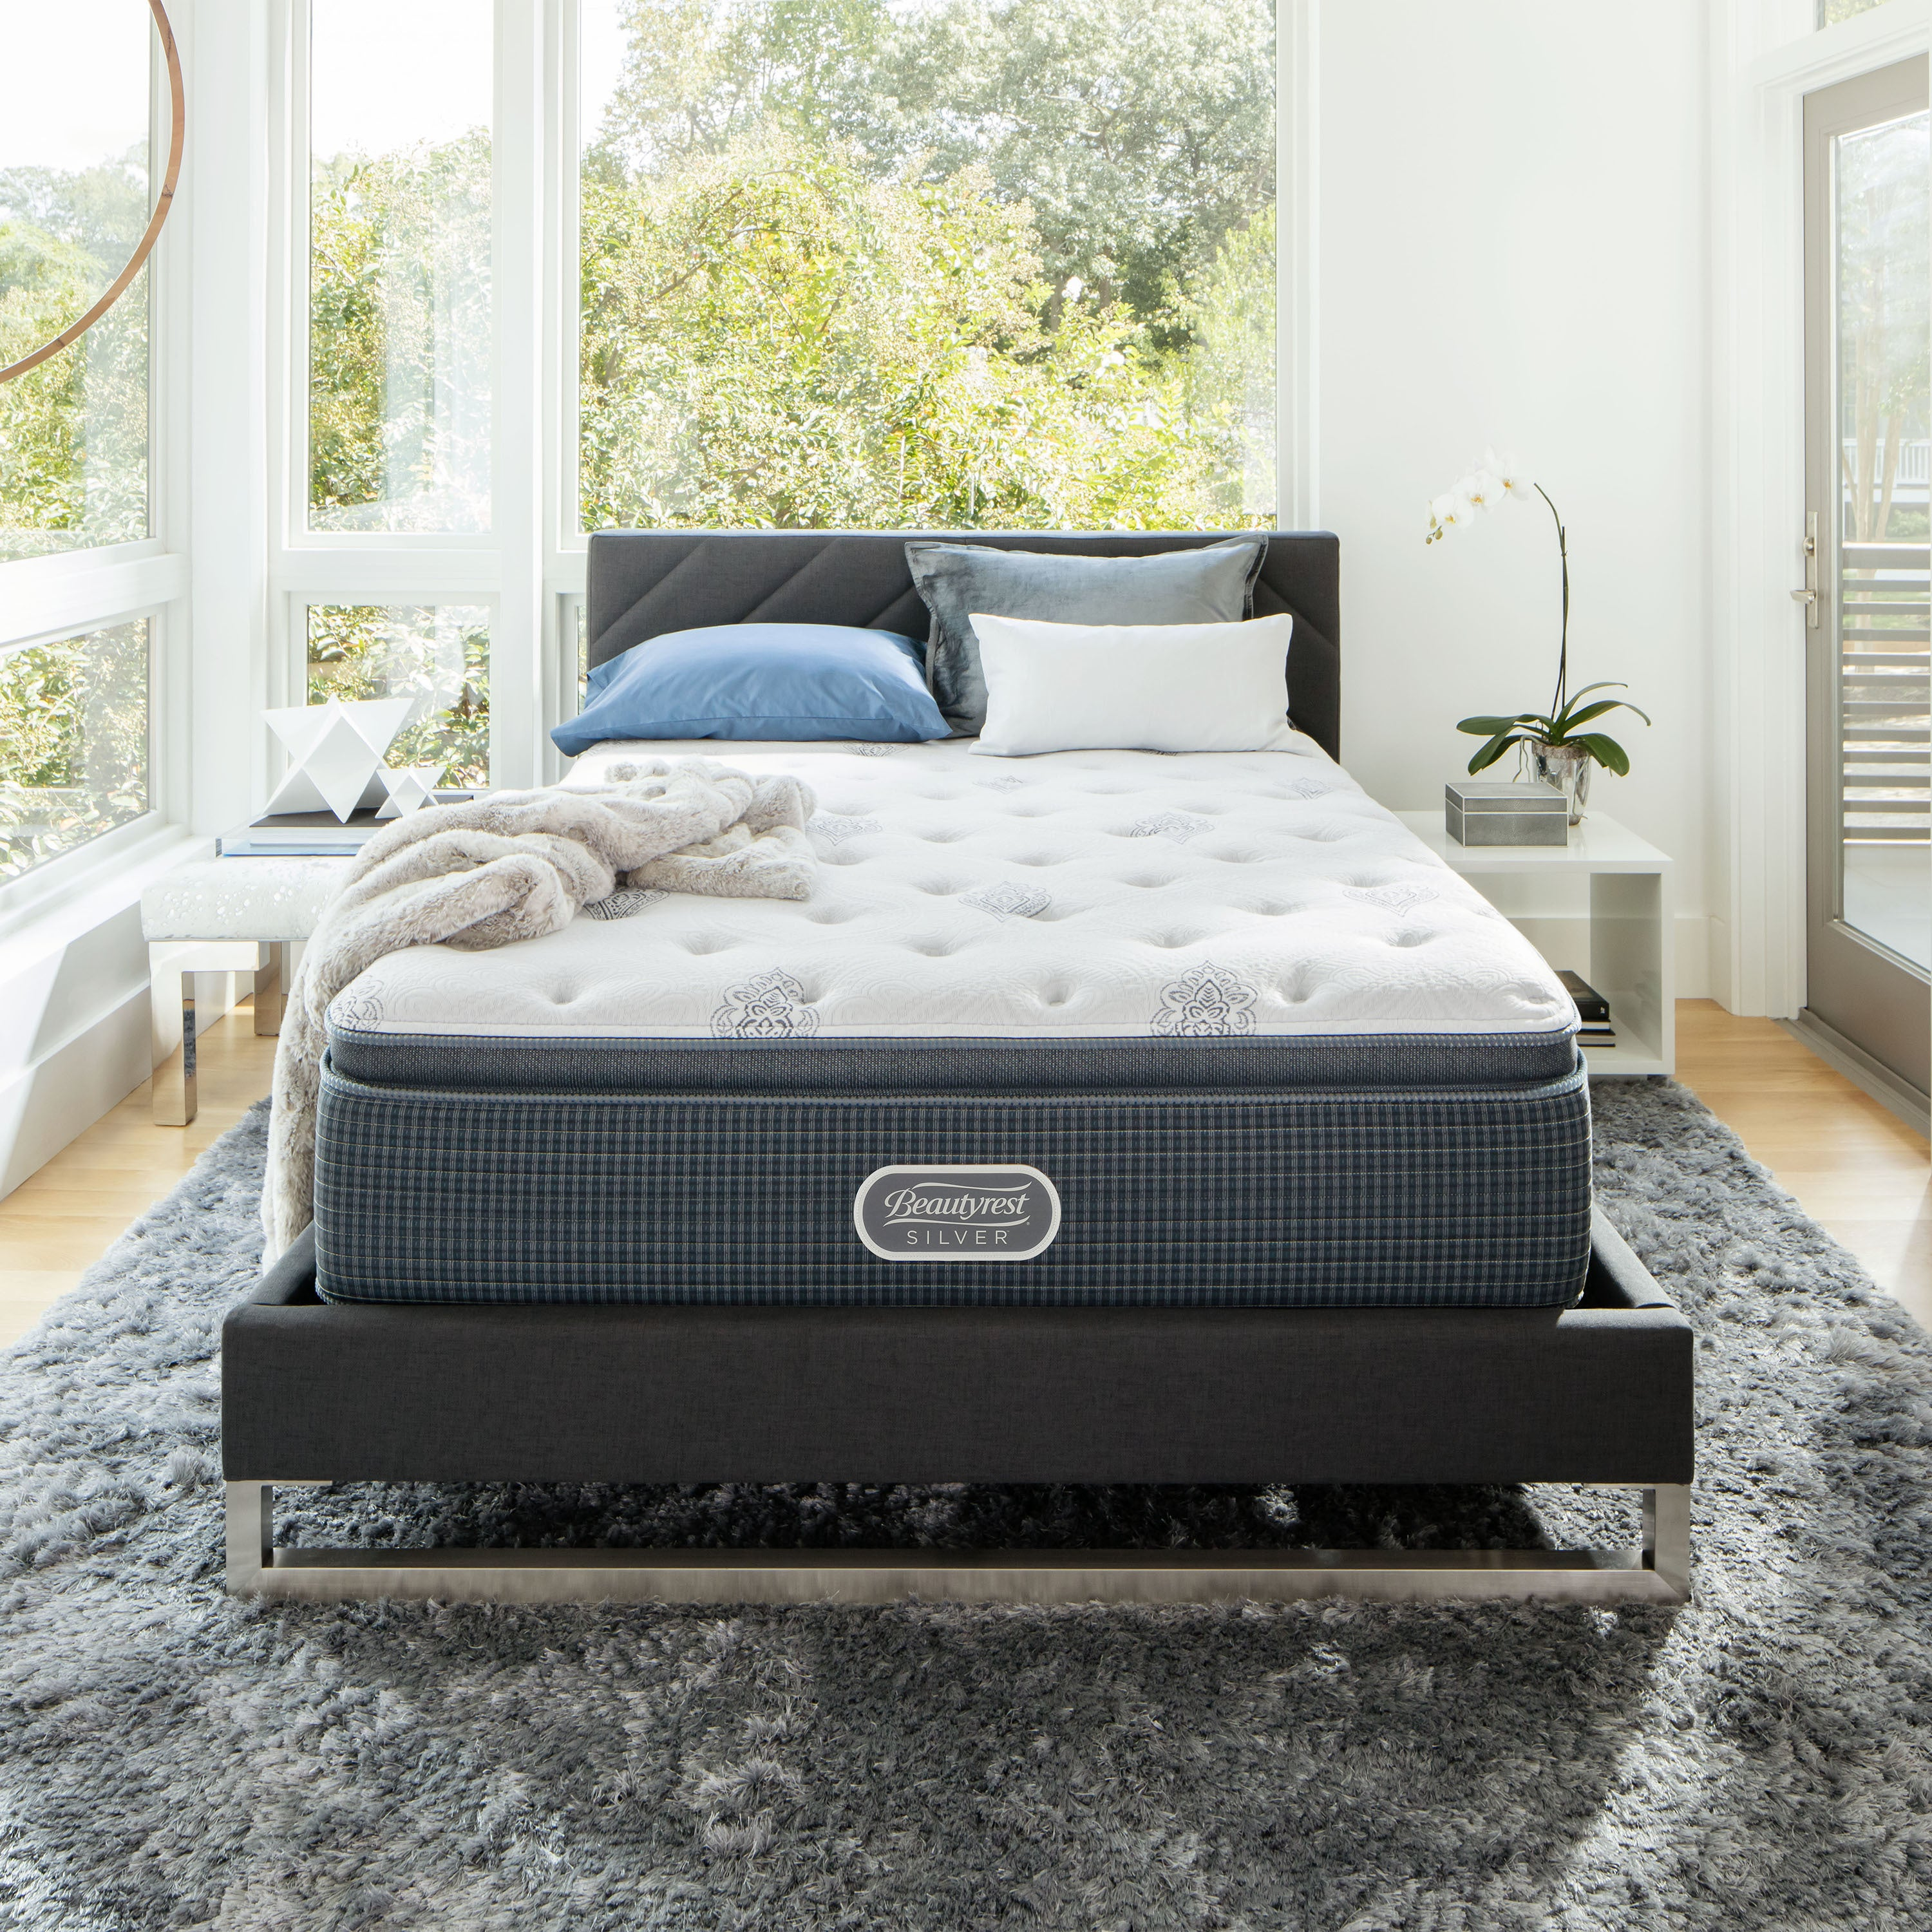 pillow s nader product mattress twin top value comfort furniture